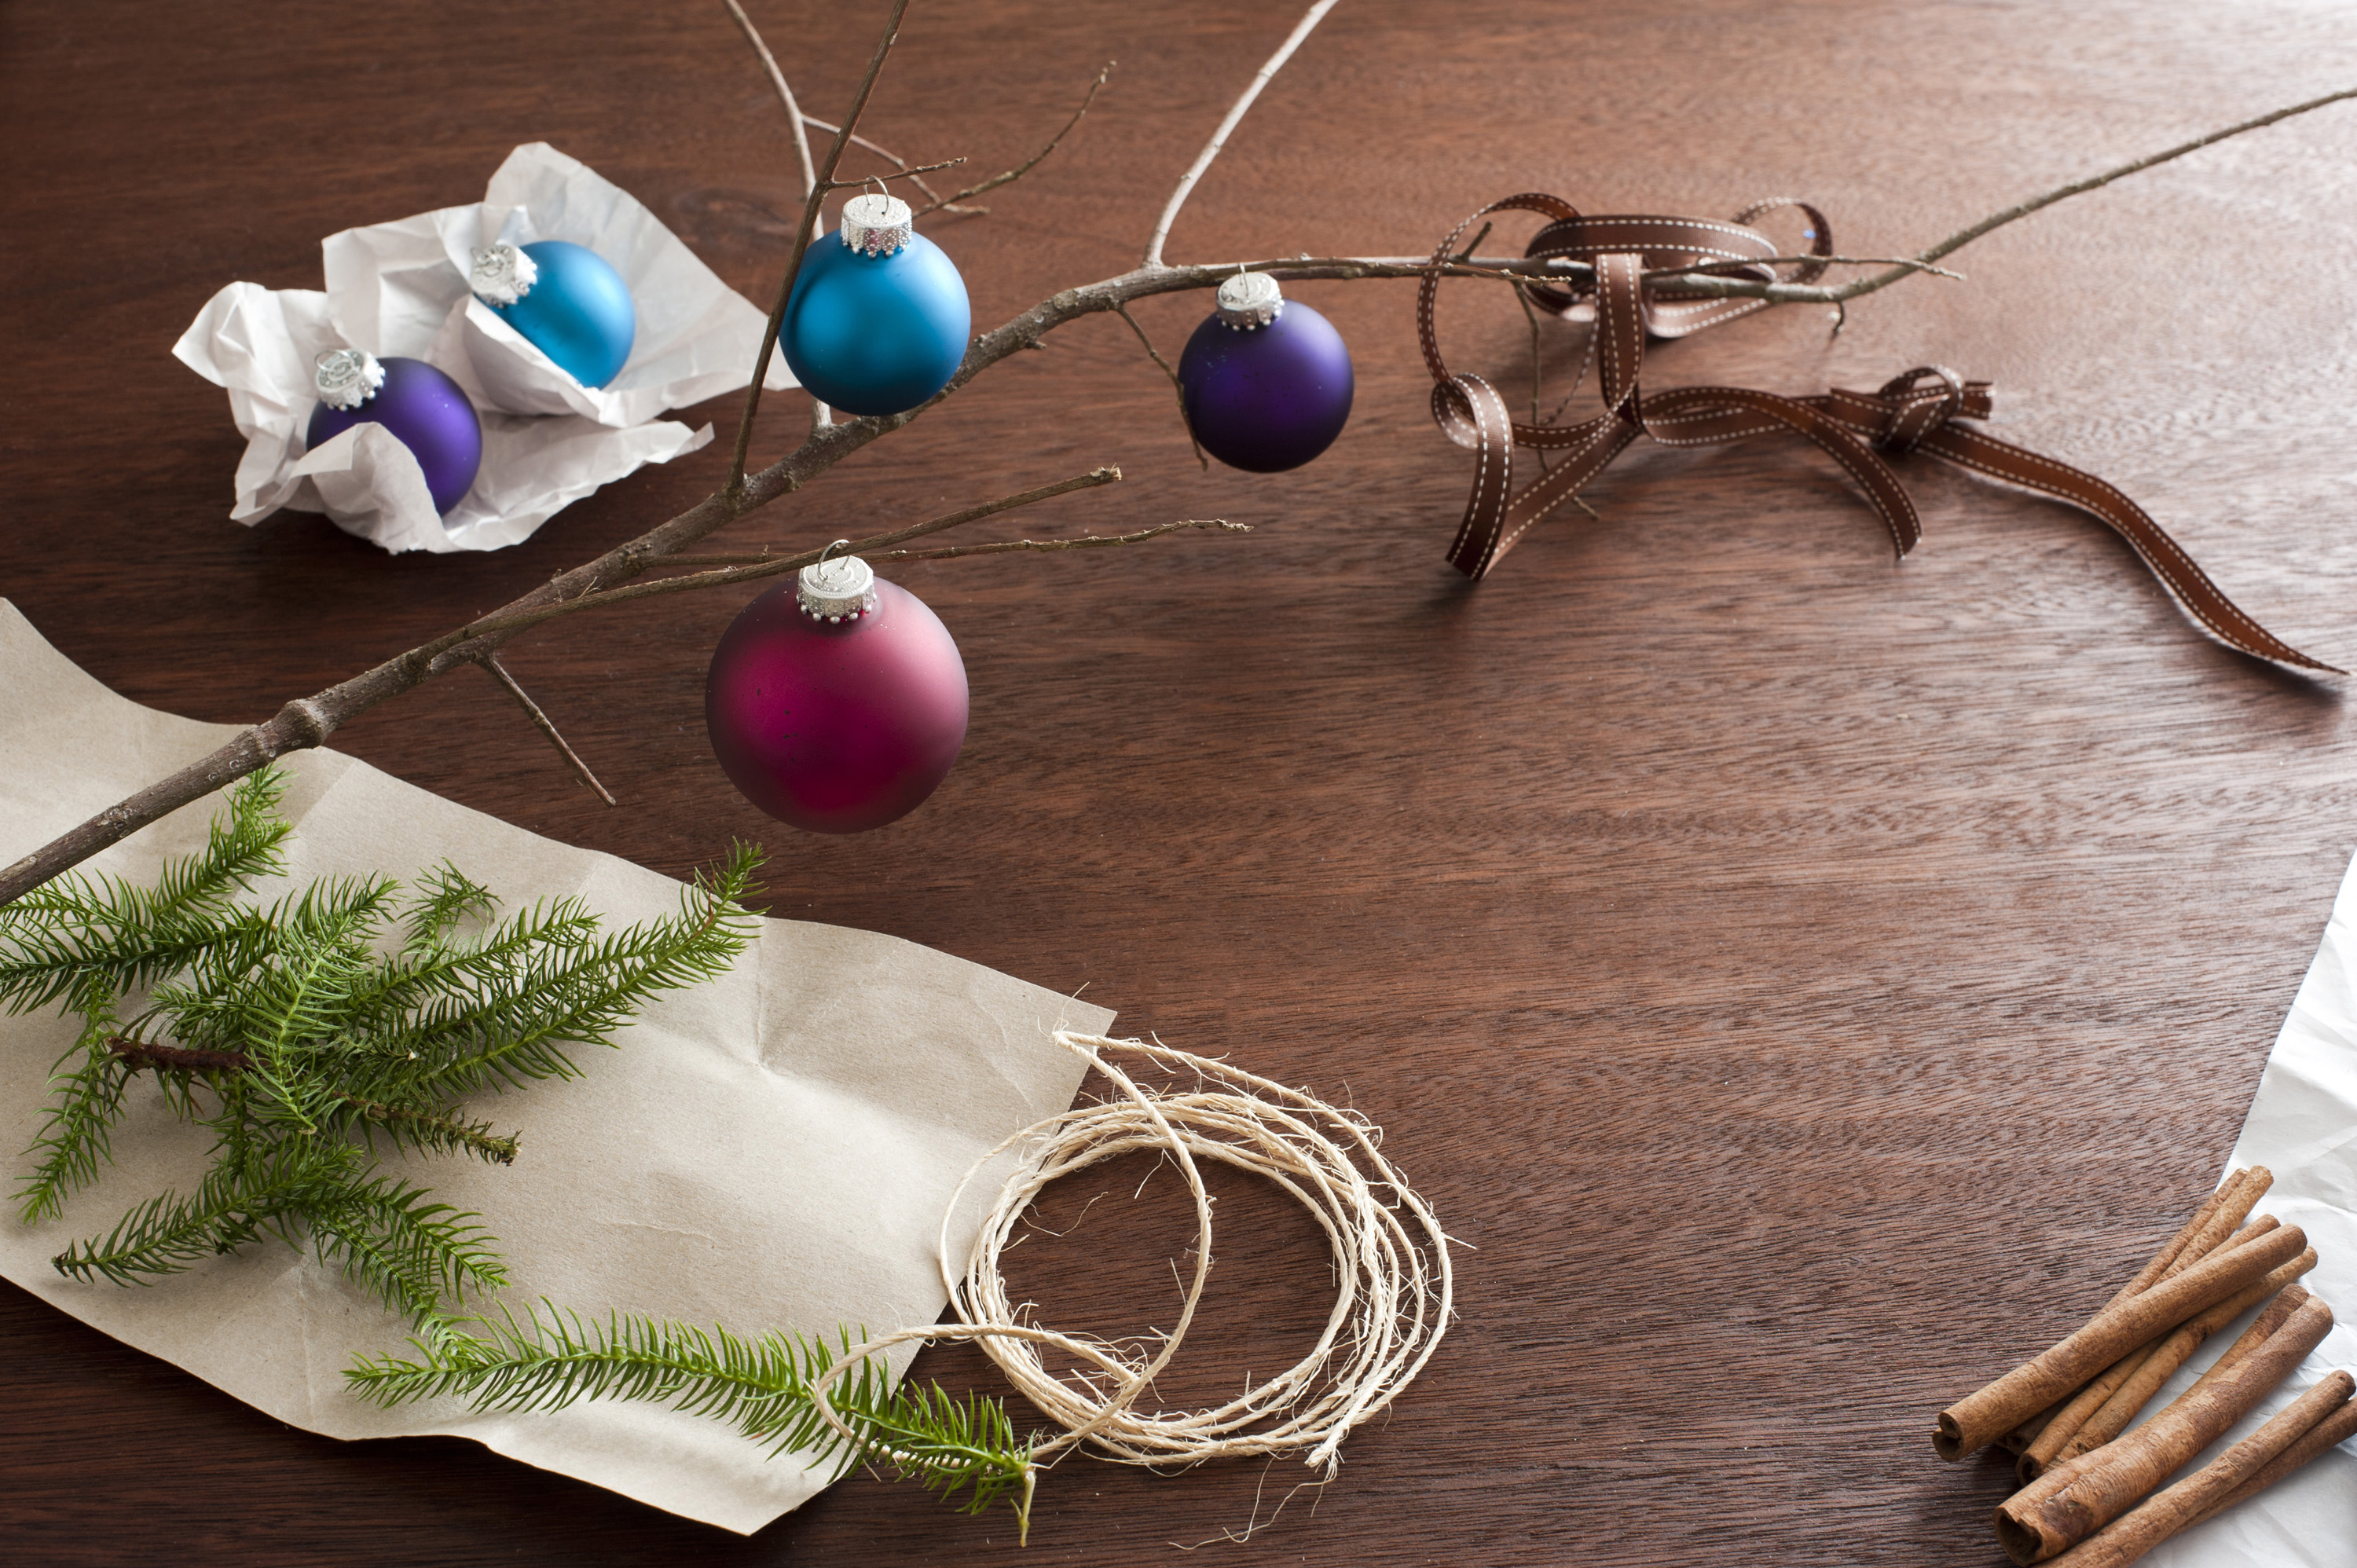 Assorted Christmas decorations on a wooden table